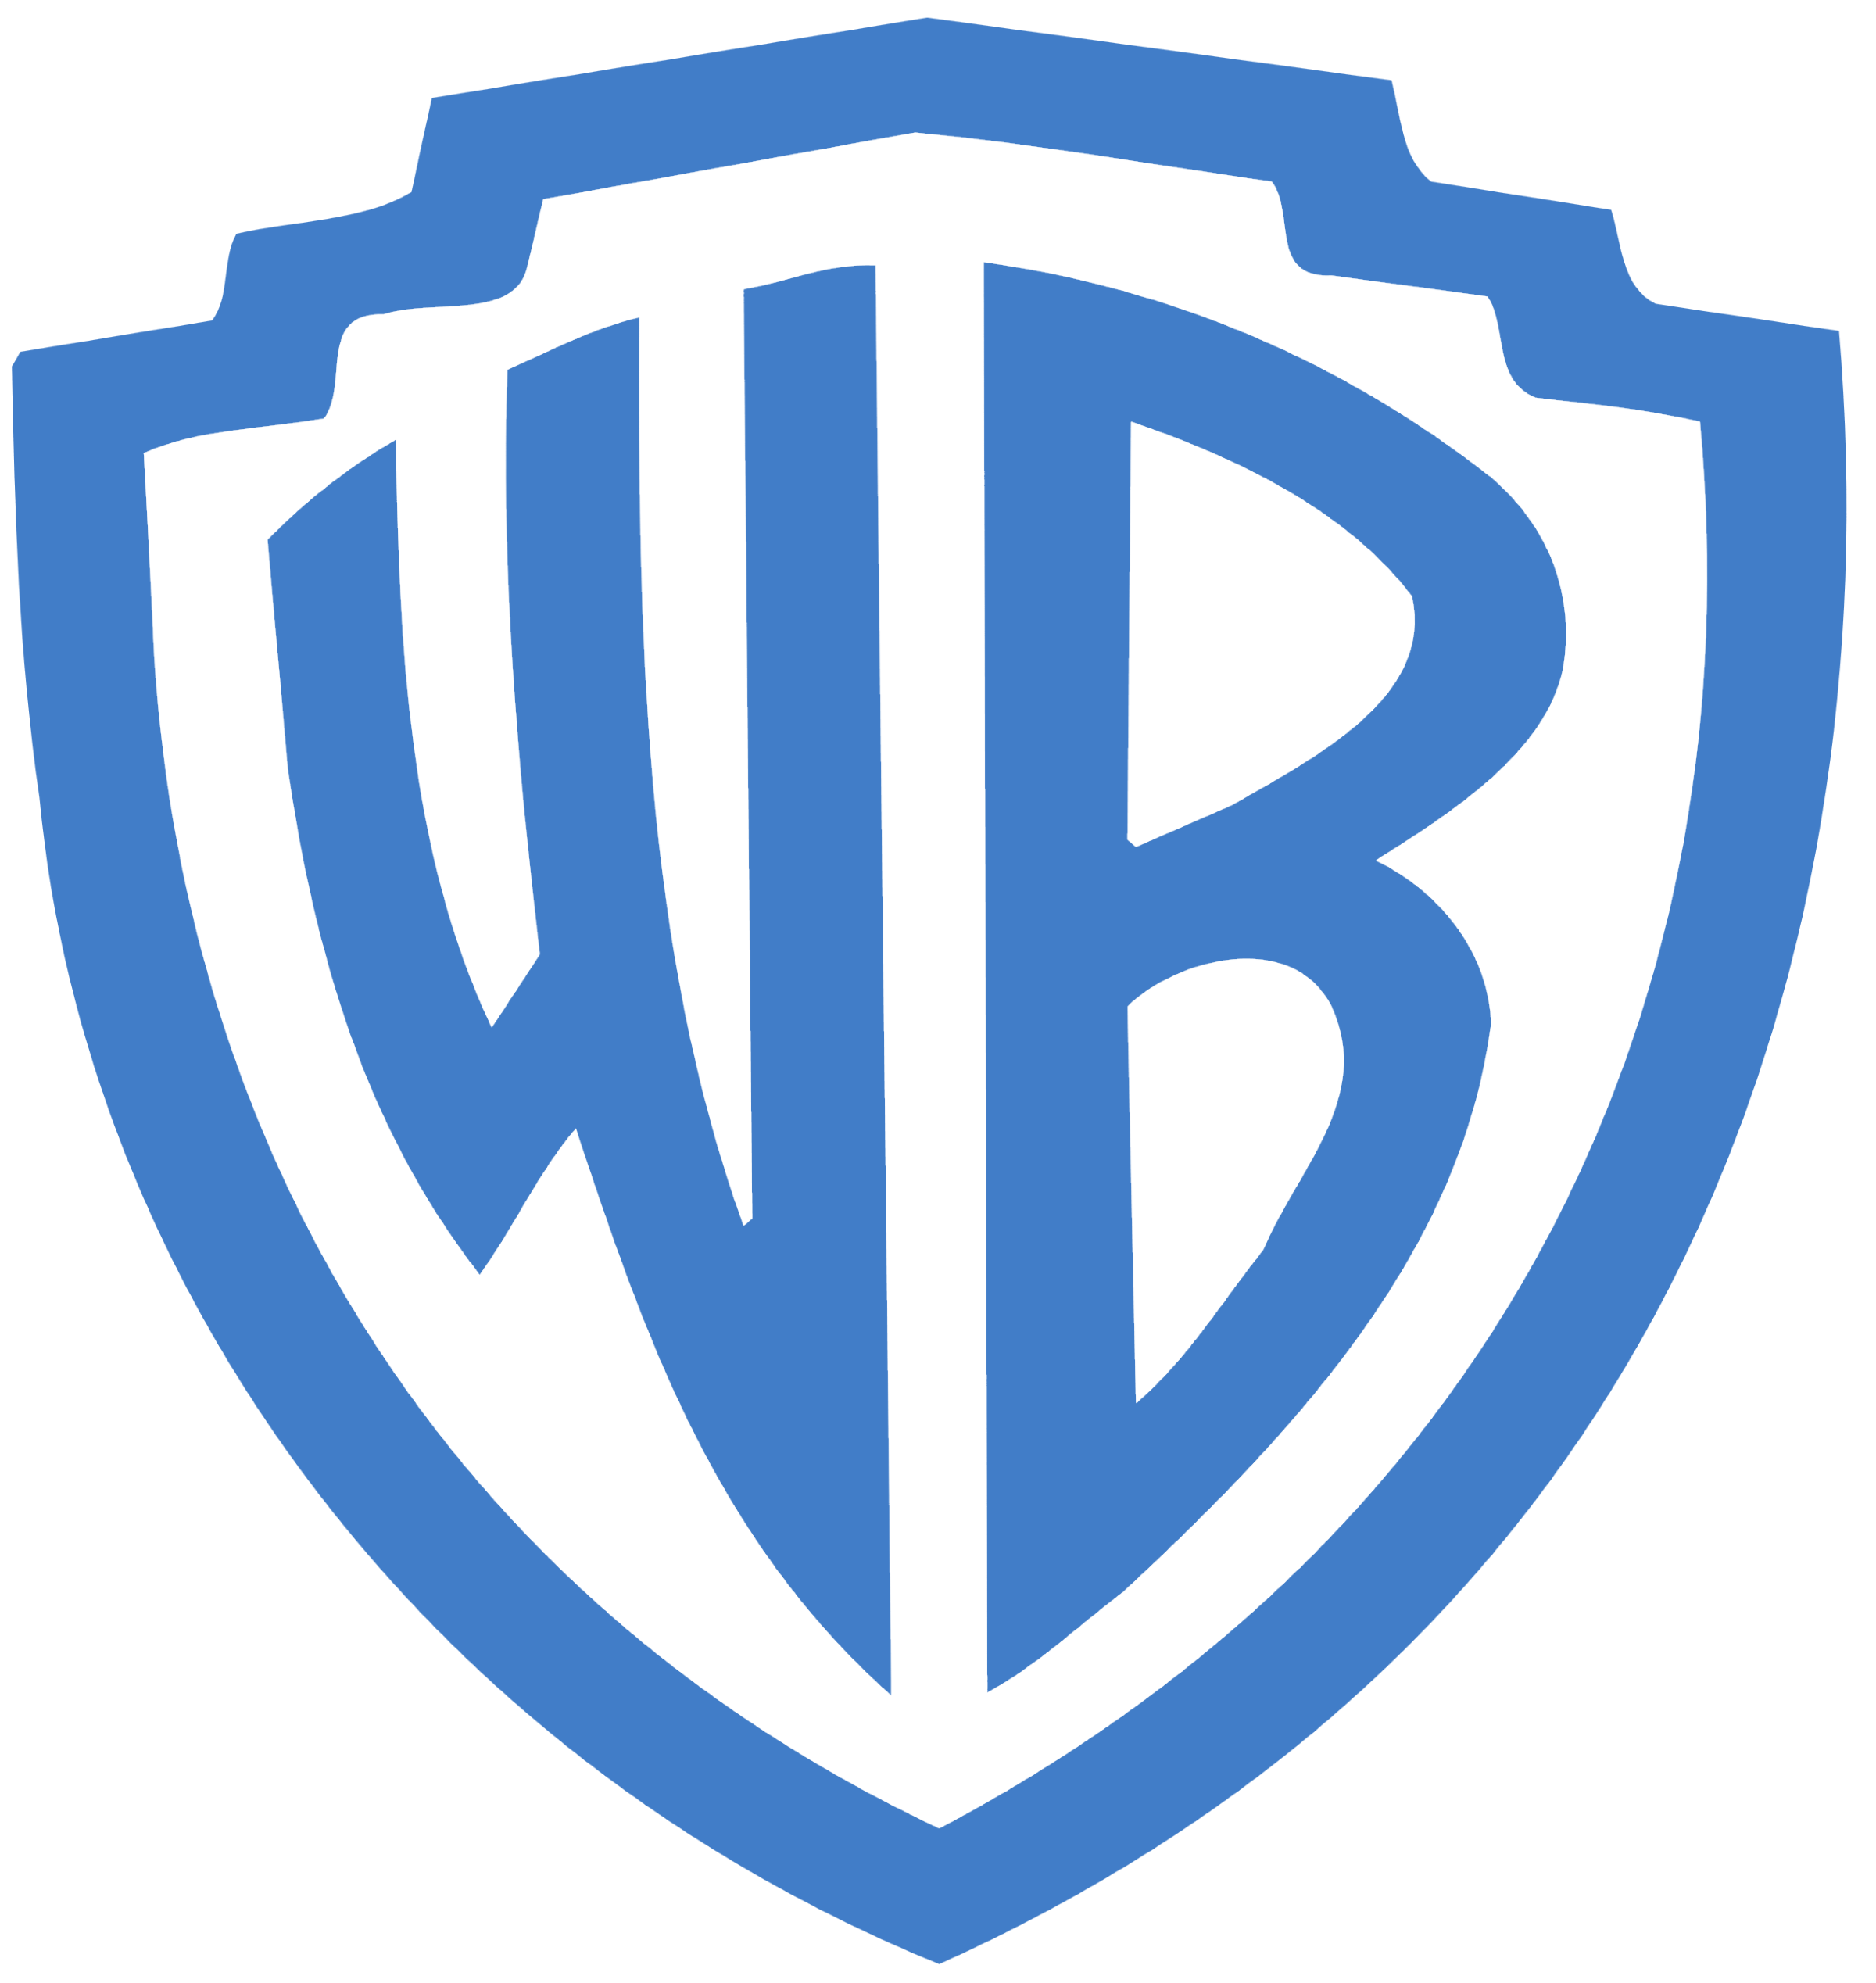 Wb Warner Bros Logos Download